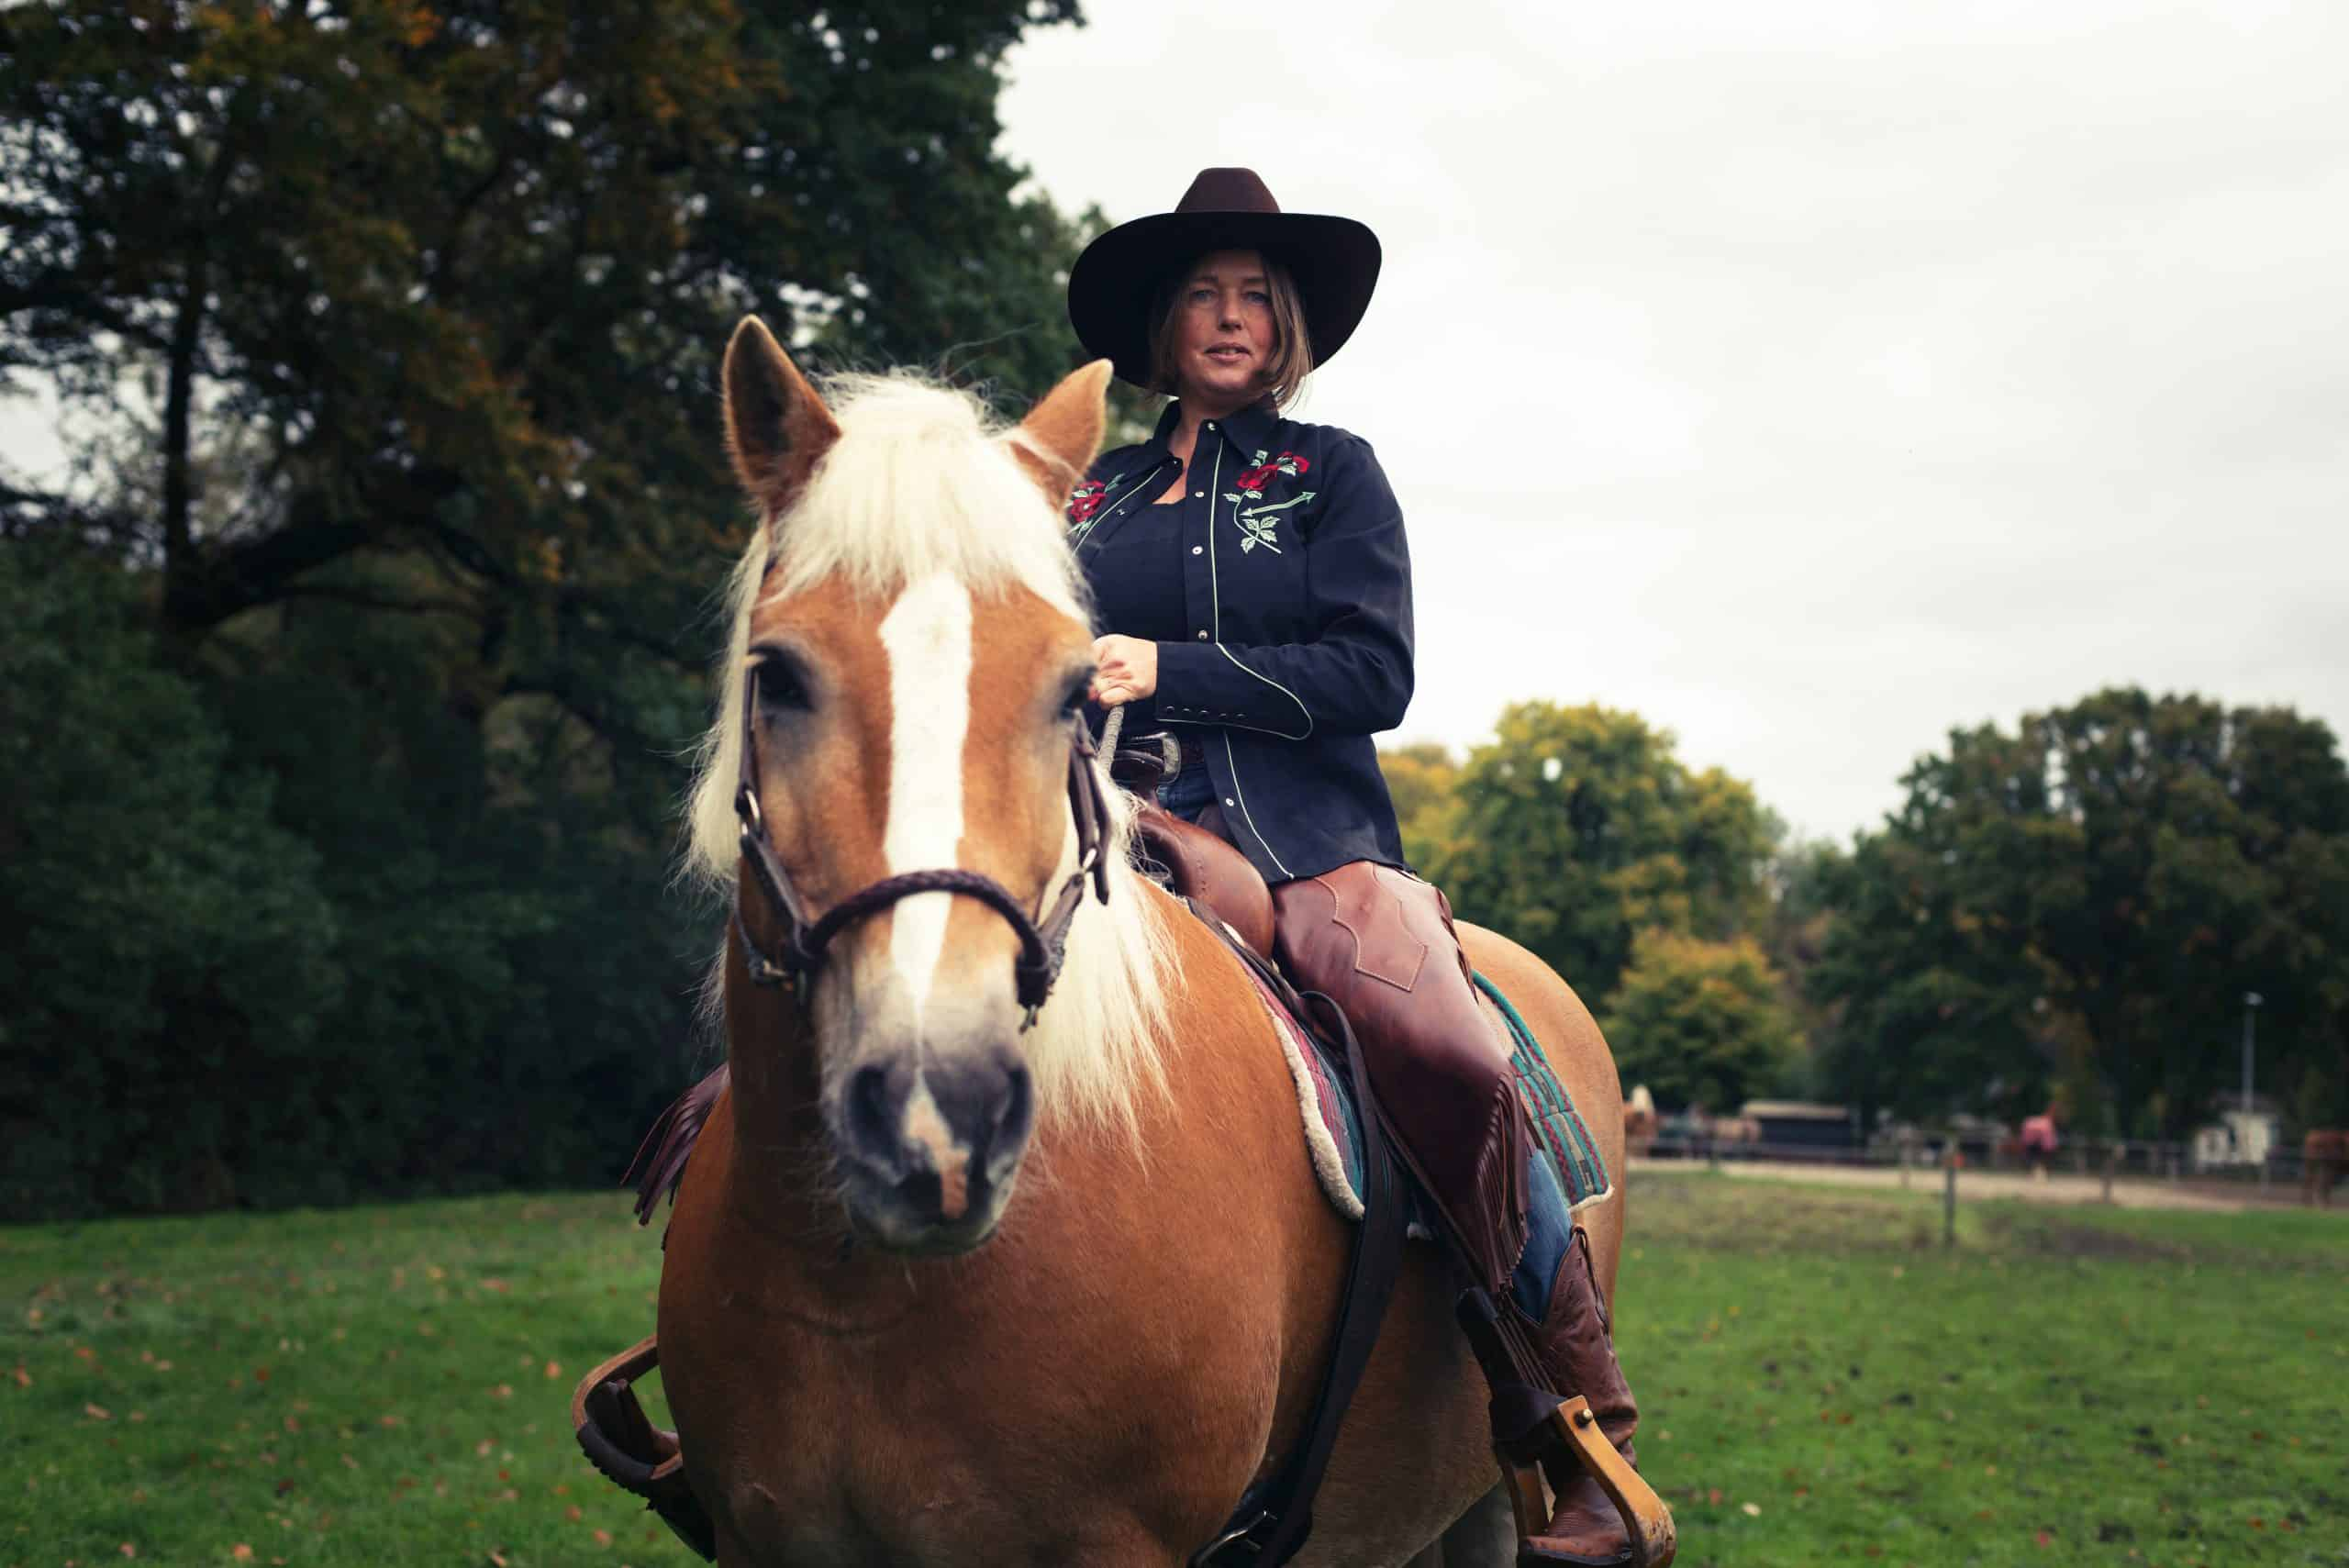 horses mental health benefits Smiling western style woman horse riding in countryside.